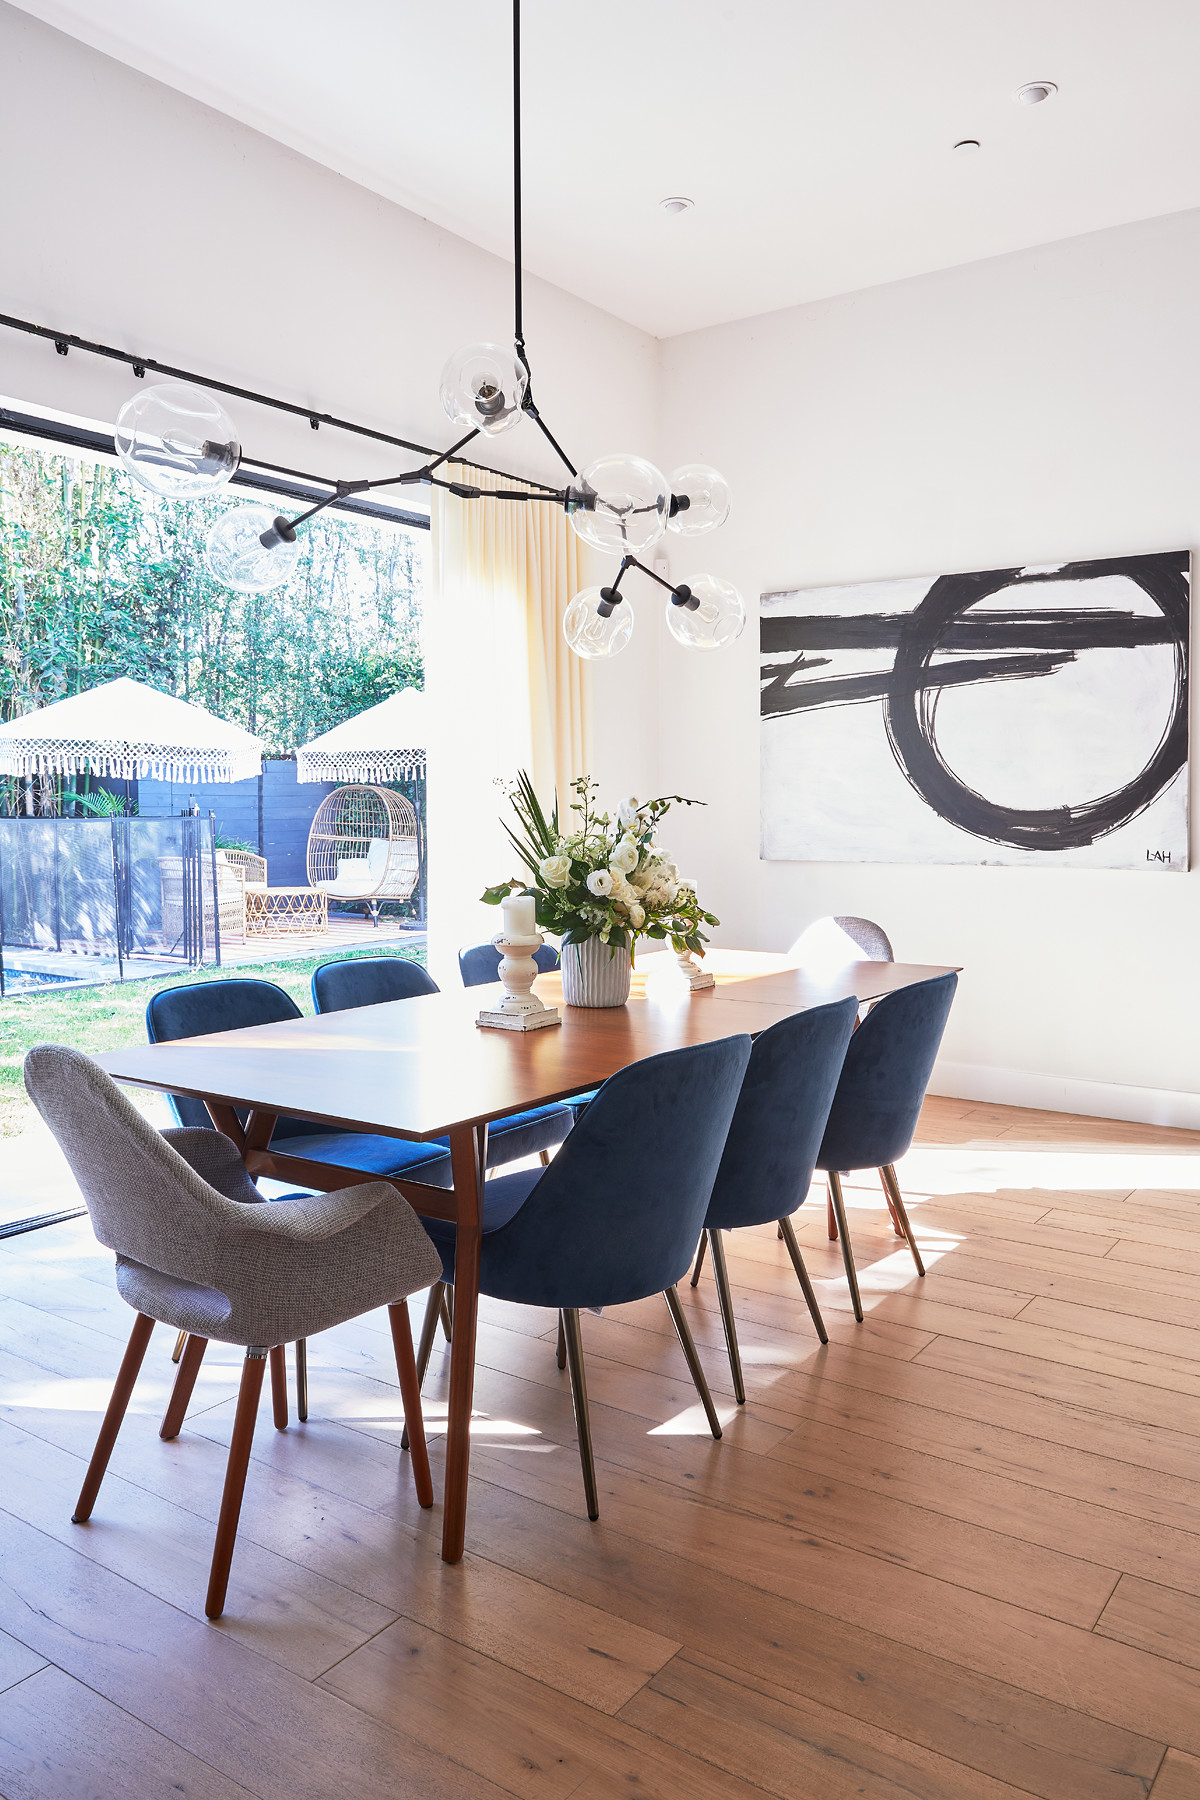 The dining room is a modern take on mid-century elegance.West Elm Expandable Dining Table |West Elm Mid-Century Upholstered Dining Chair | Lauren Kleinman Abstract Painting |Dot & Bo 7-Globe Bubble Chandelier |Ophelia & Co.Bethea Stone Candlestick.